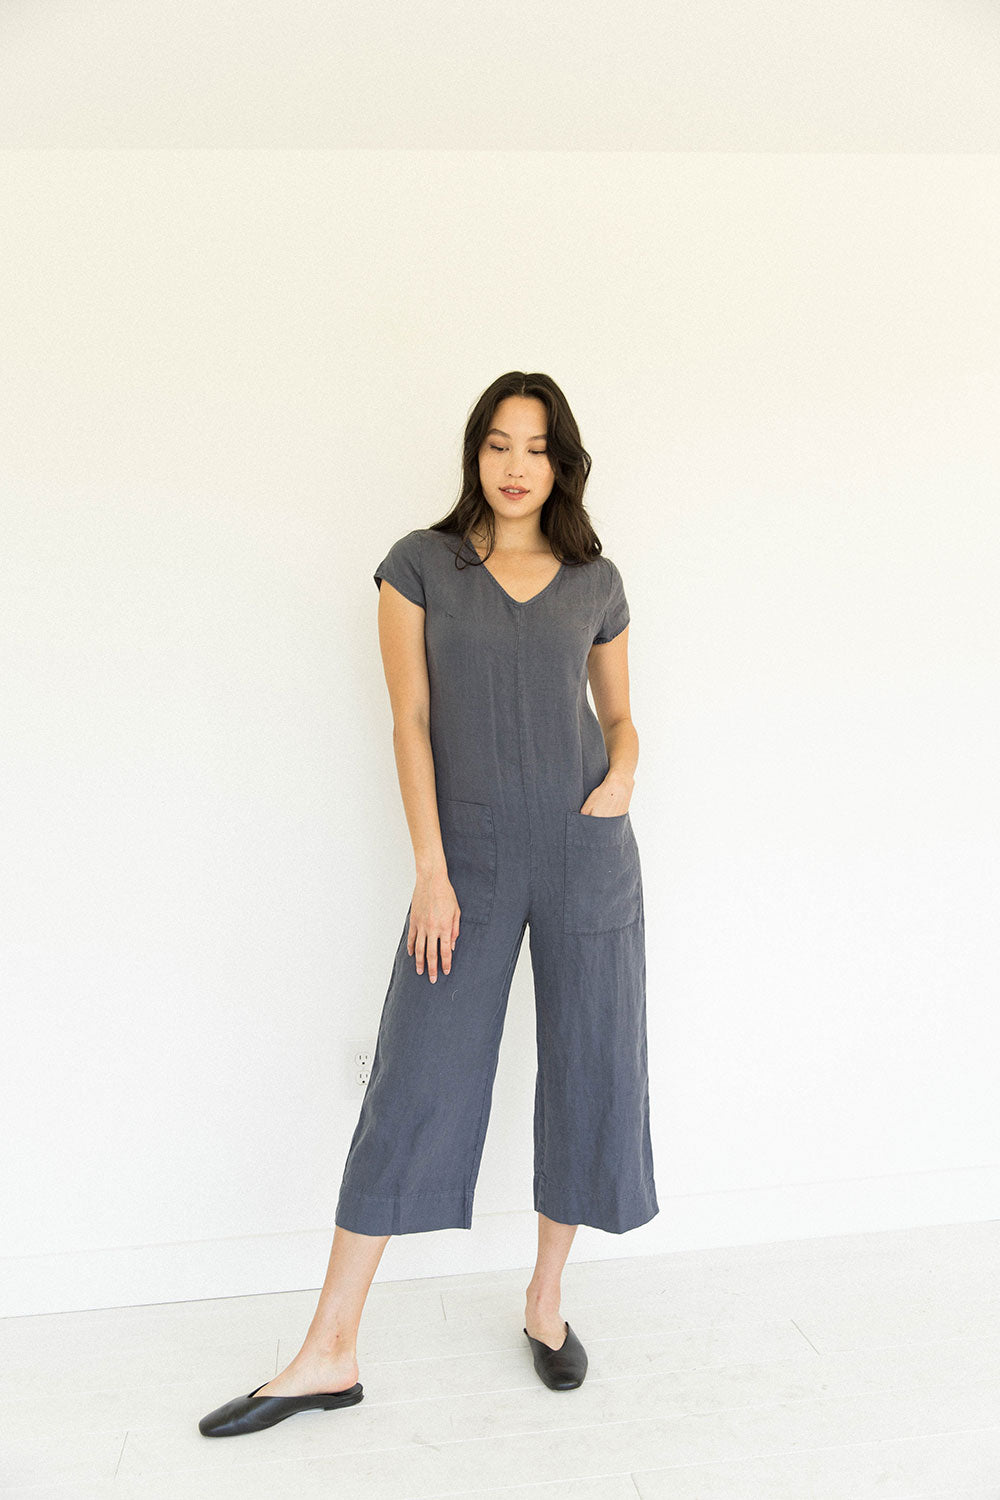 The Linen Jumpsuit in Mood Indigo